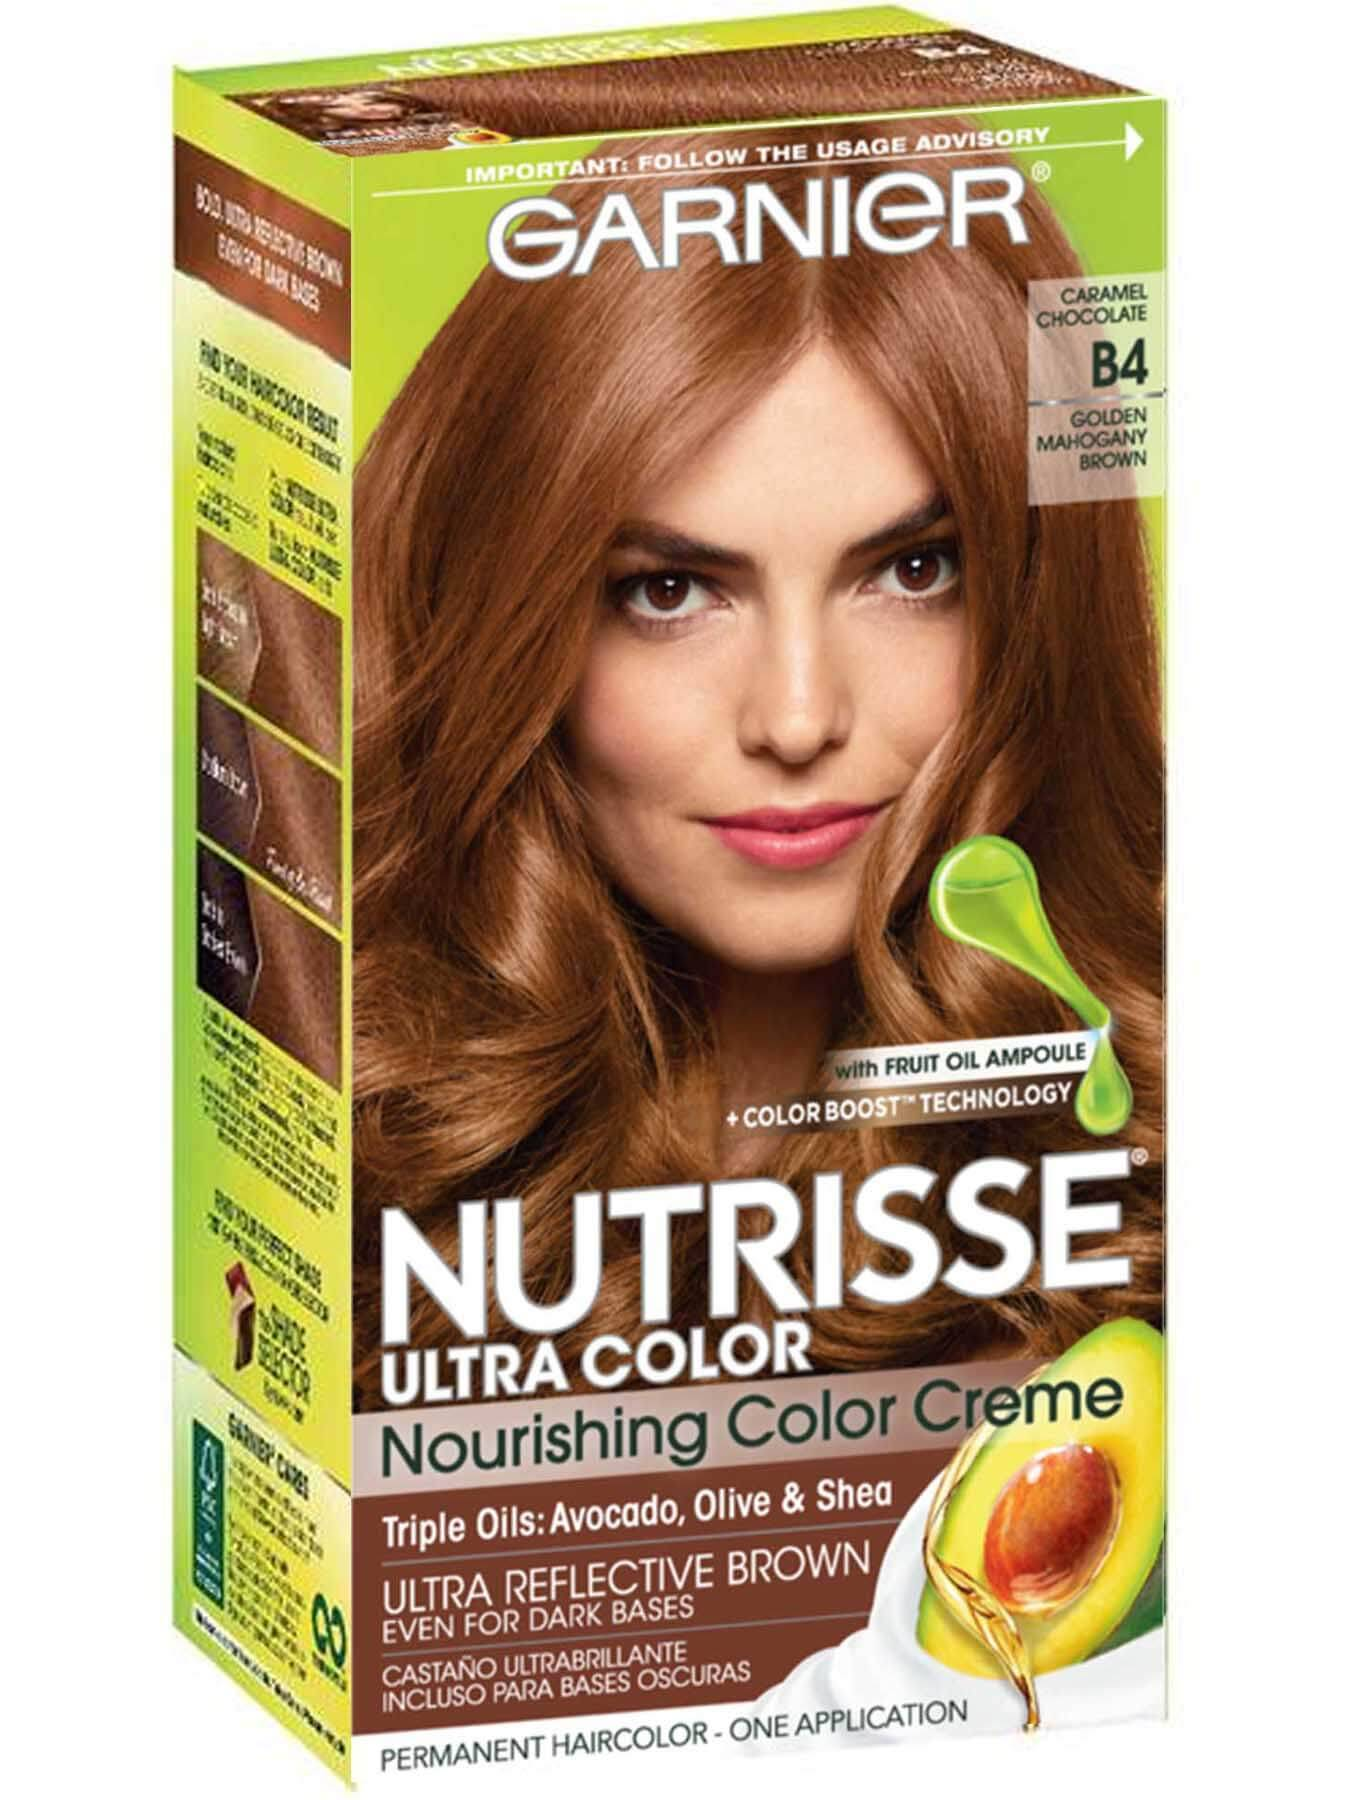 Nutrisse Ultra-Color - Caramel Chocolate Hair Color - Garnier